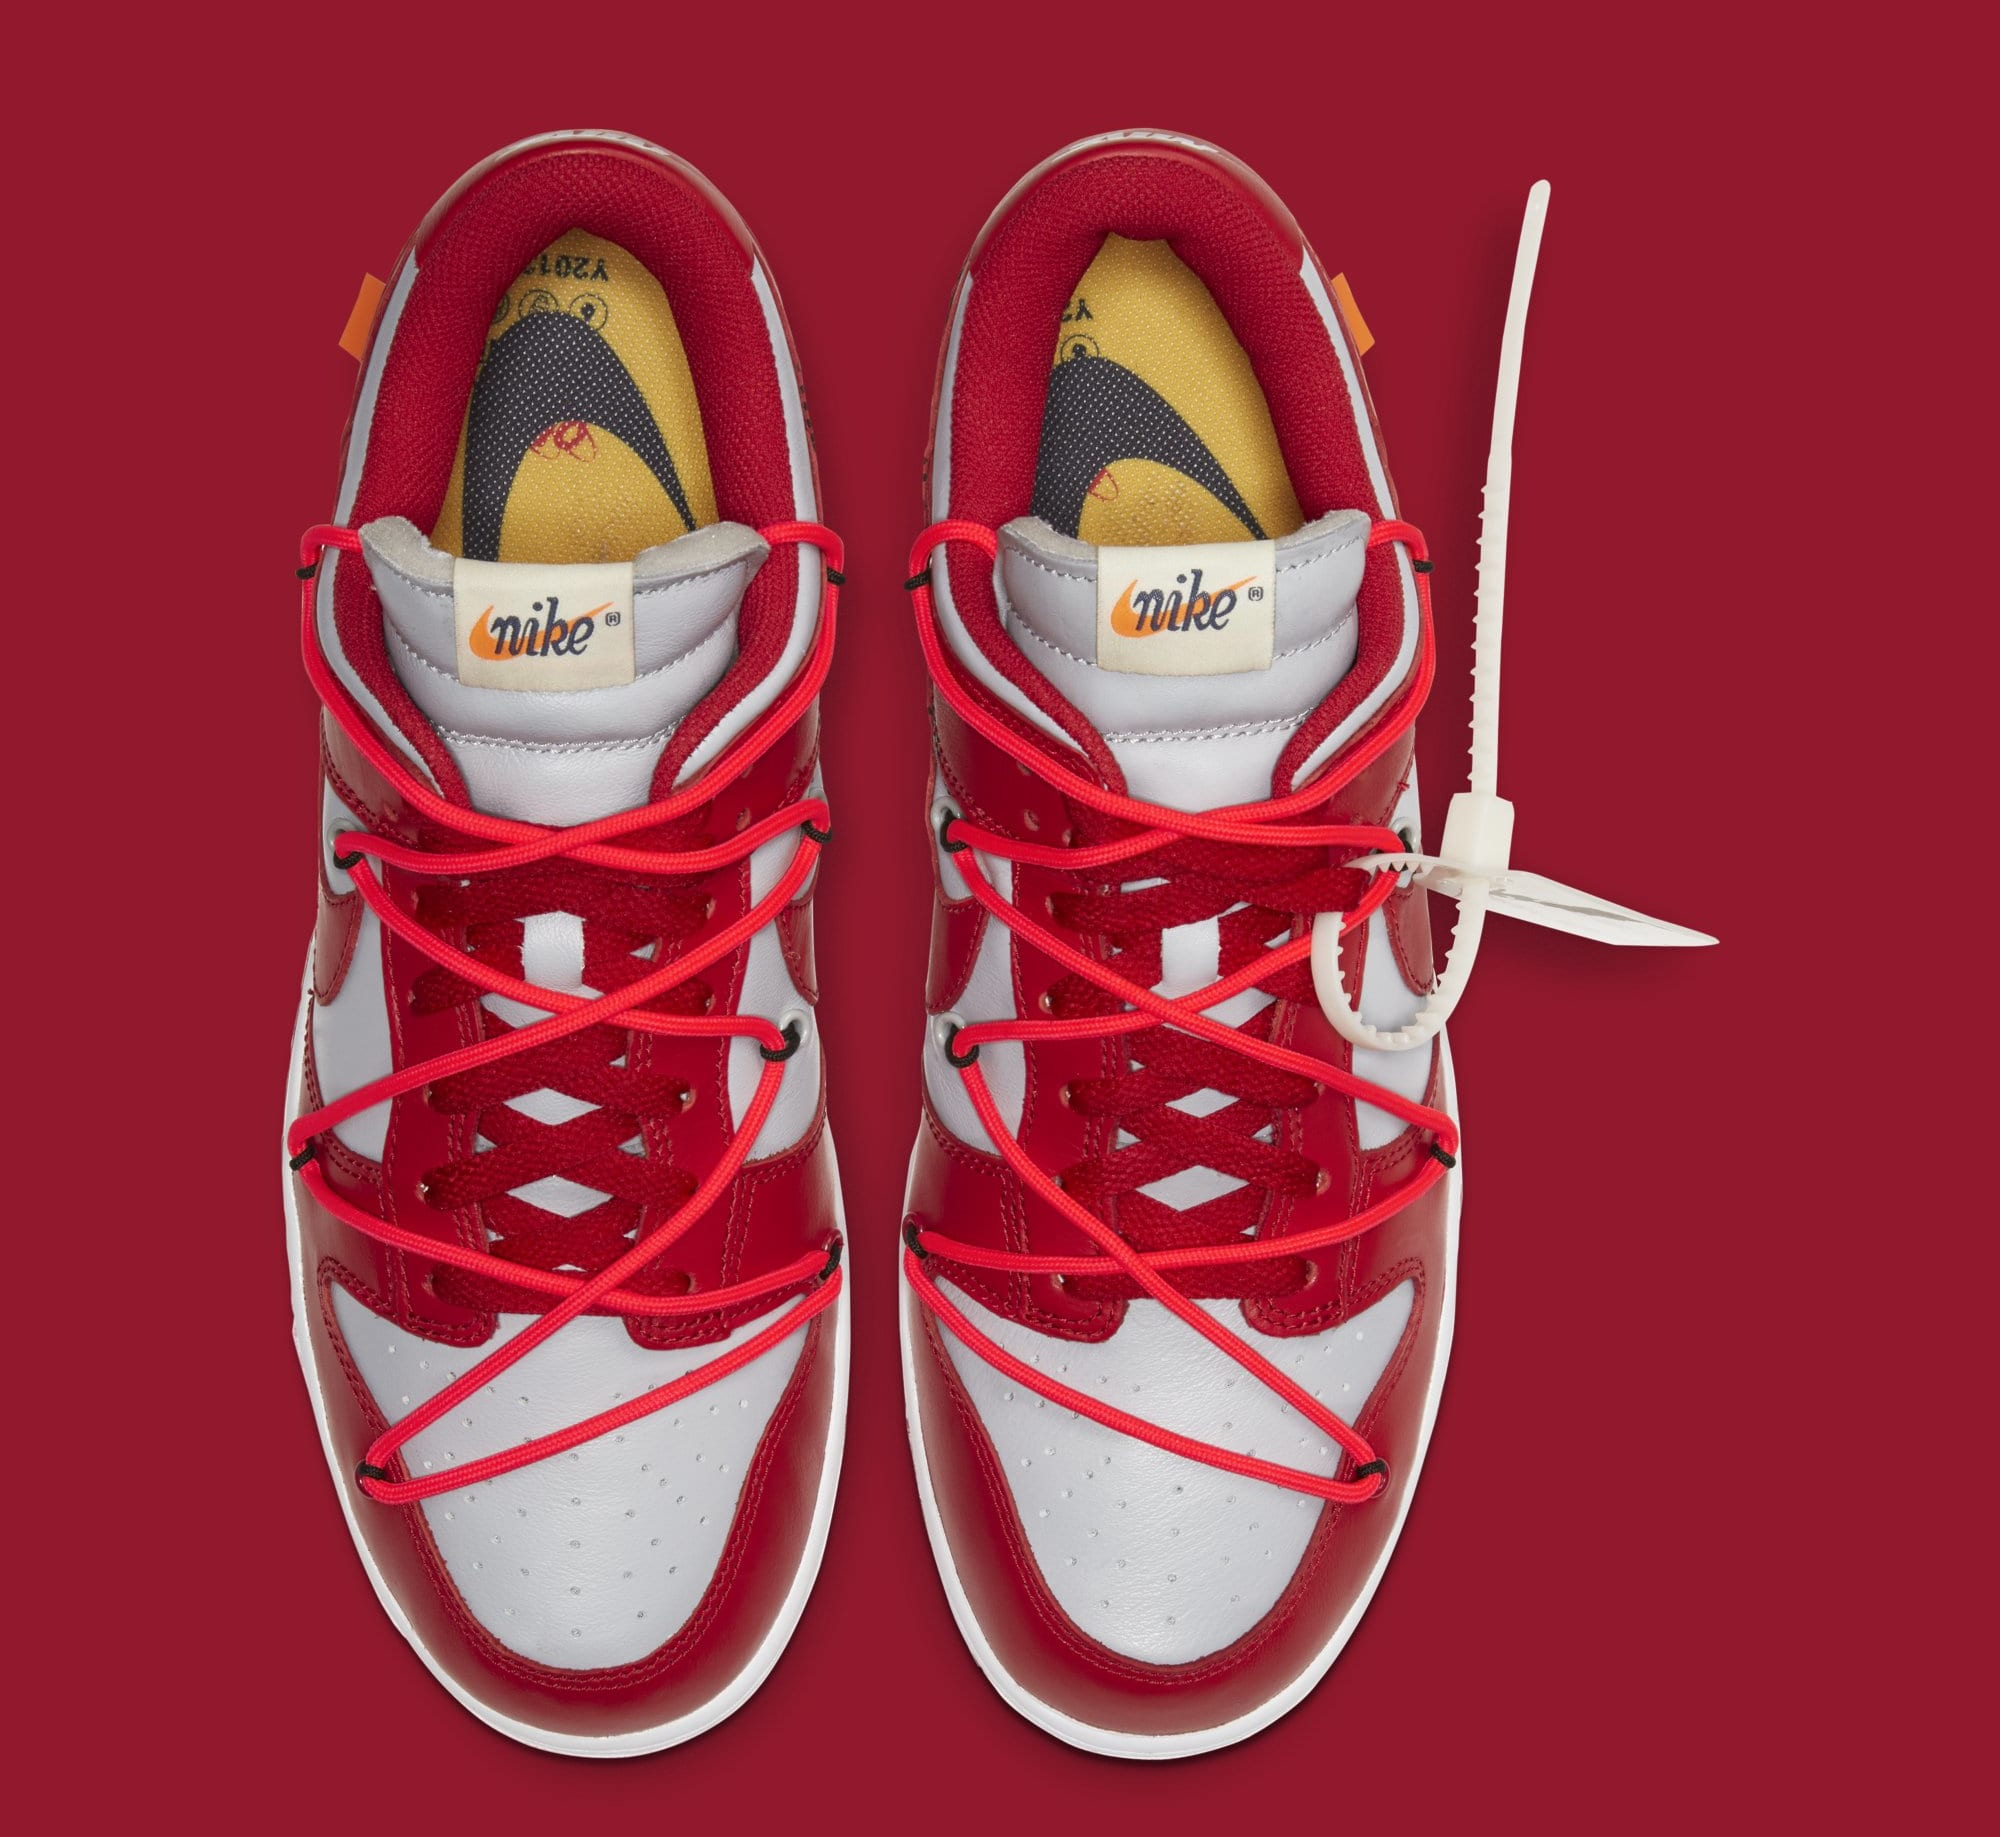 Off-White x Nike Dunk Low 'University Red/Wolf Grey' CT0856-600 (Top)